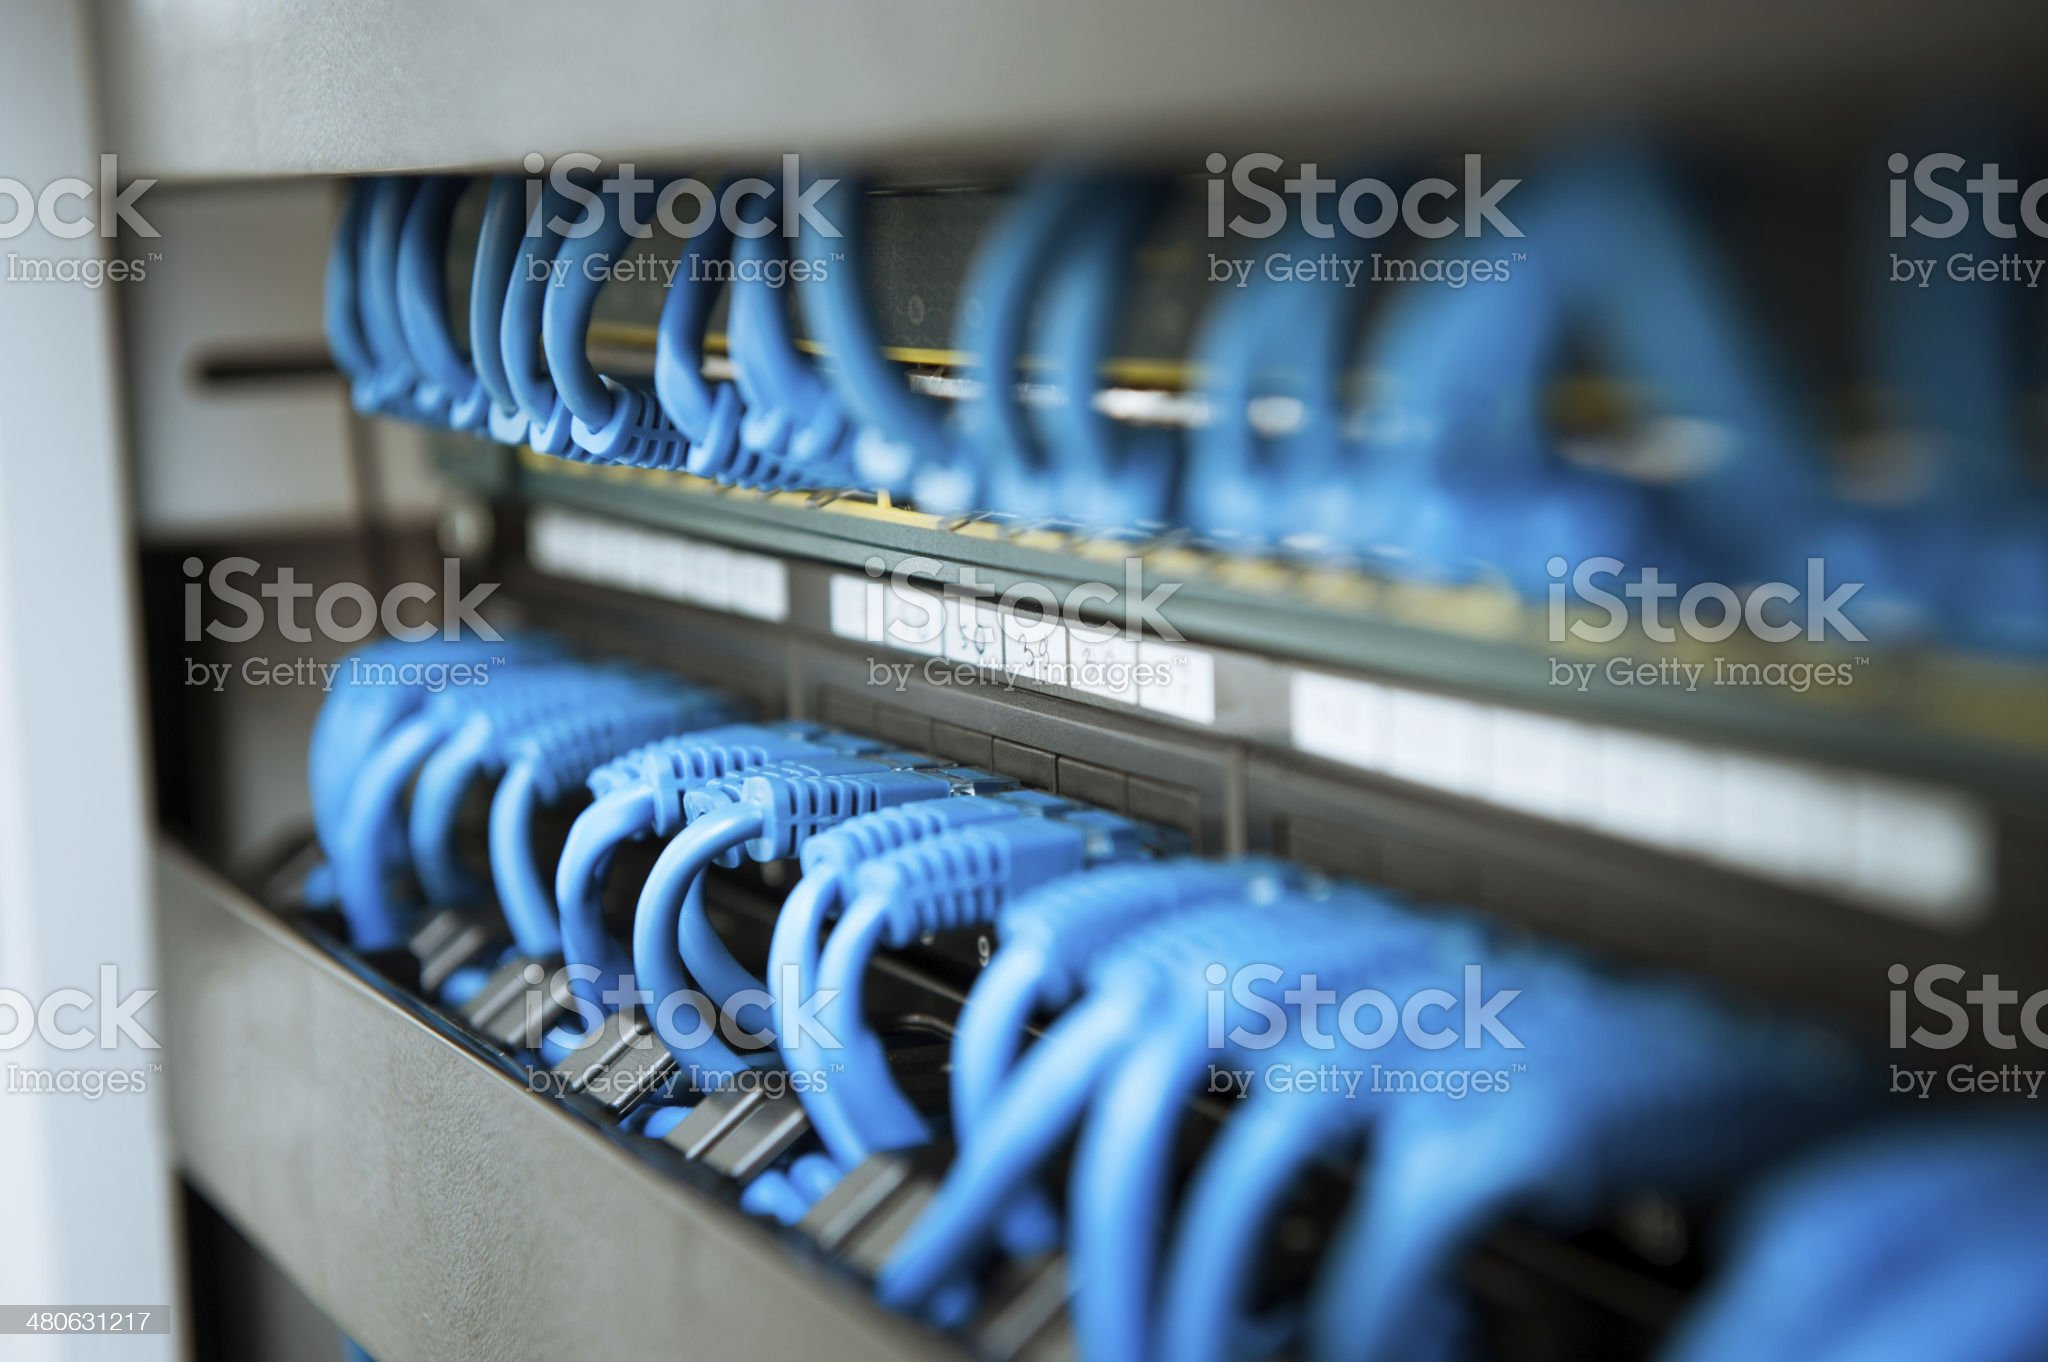 Network hub and cable royalty-free stock photo